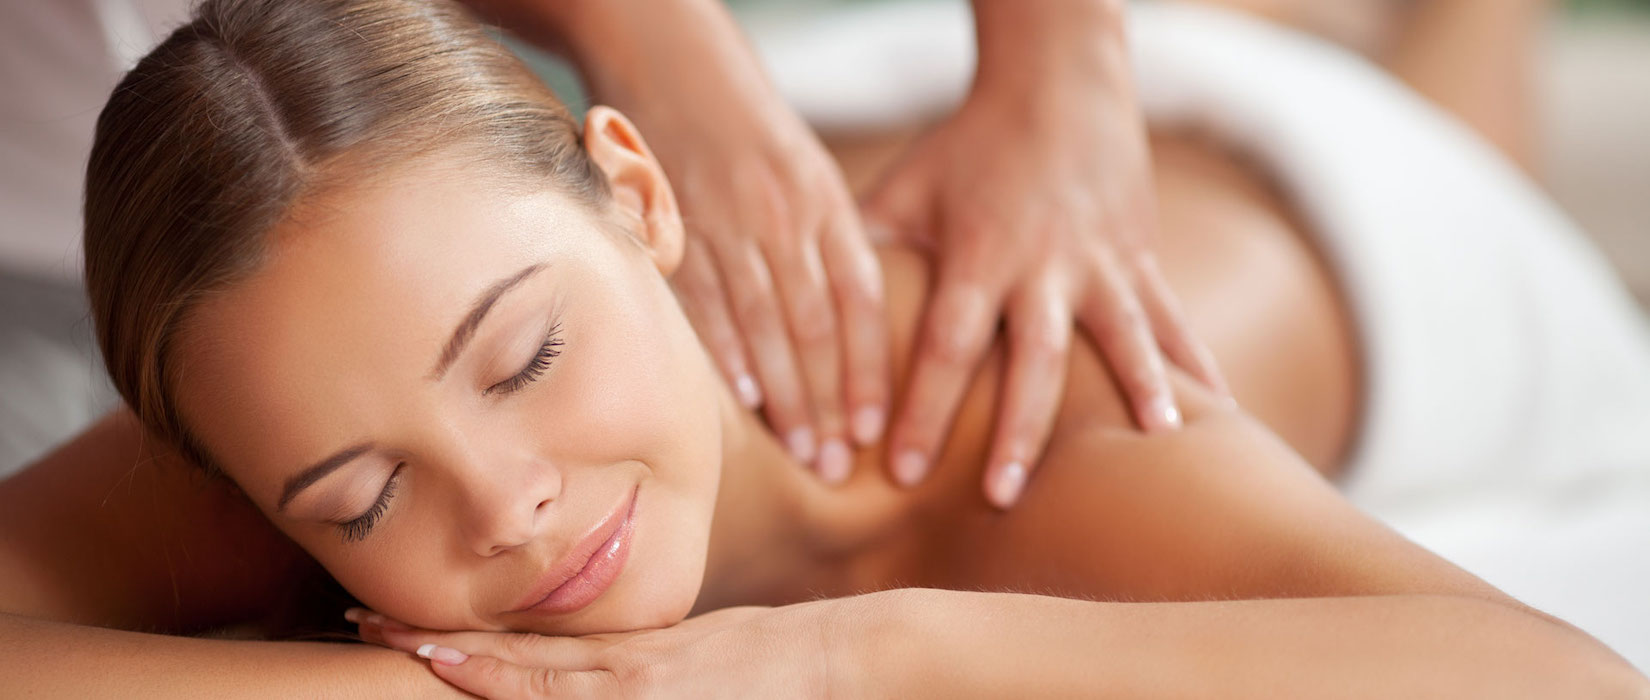 michigan massage therapy